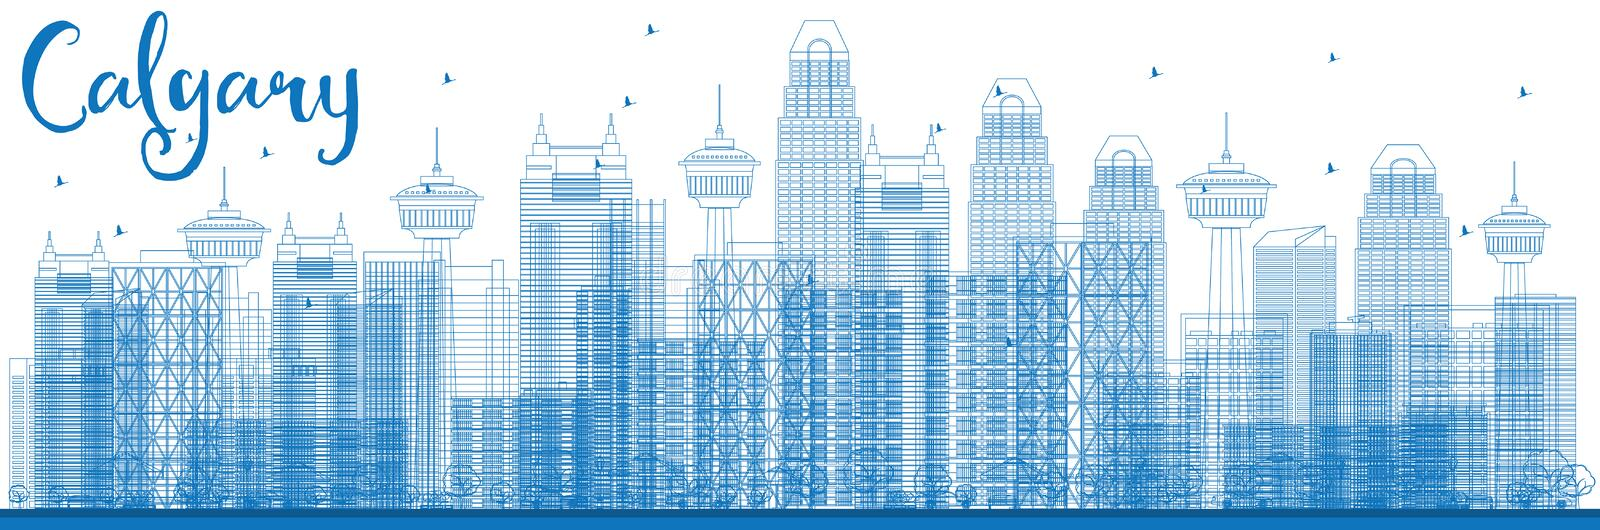 Outline Calgary Skyline with Blue Buildings. Vector Illustration. Business travel and tourism concept with modern buildings. Image for presentation, banner royalty free illustration